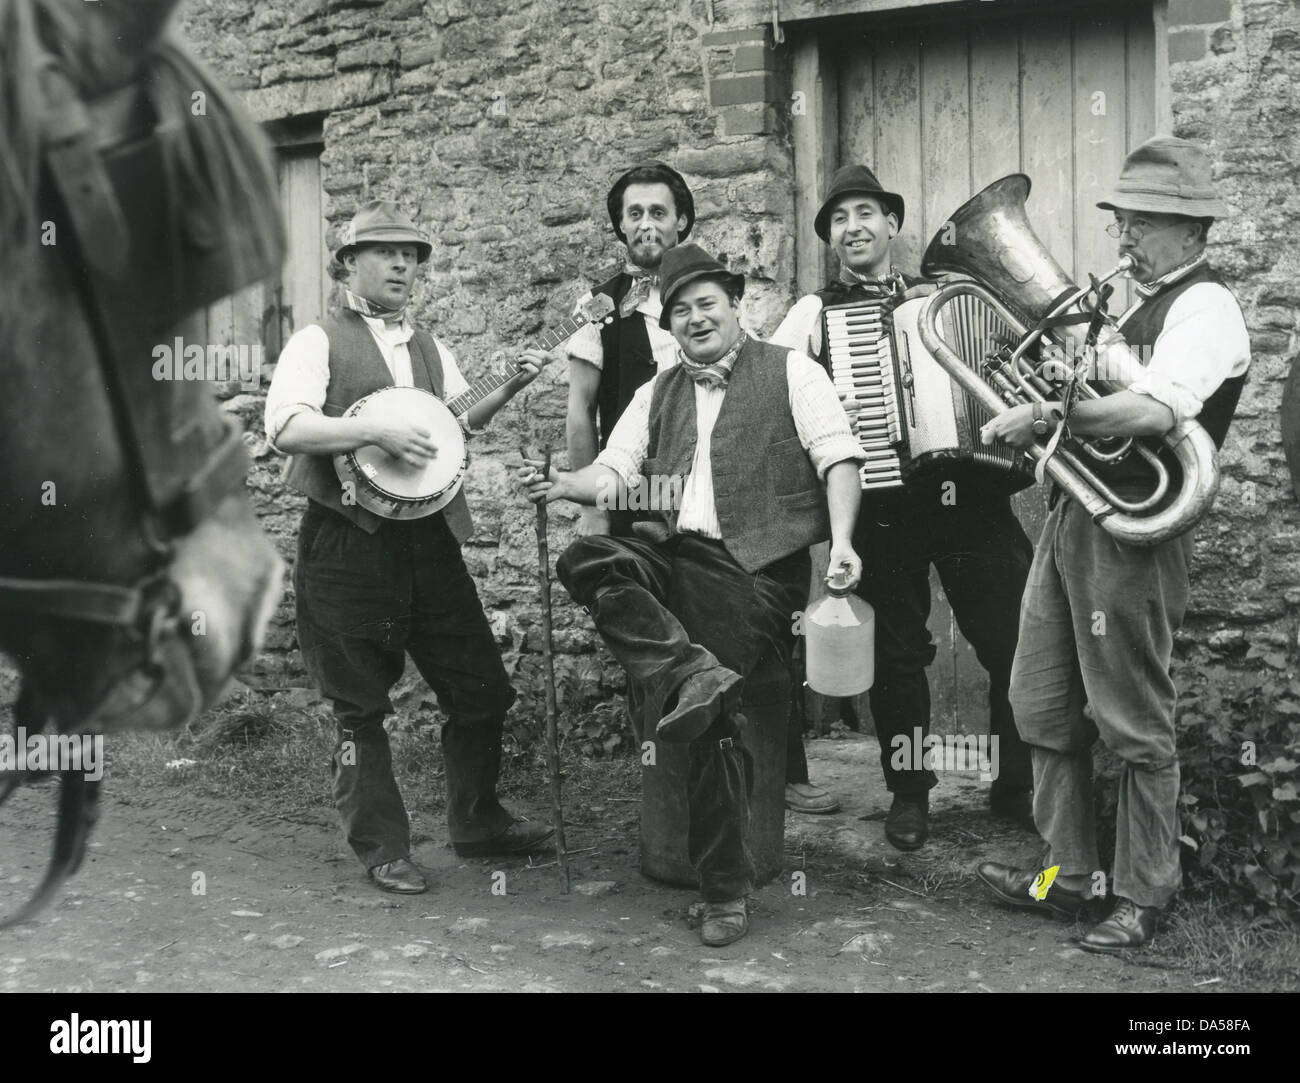 ADGE CUTLER AND THE WURZELS Promotional photo of English pop comedy group  about 1973. Cuitler